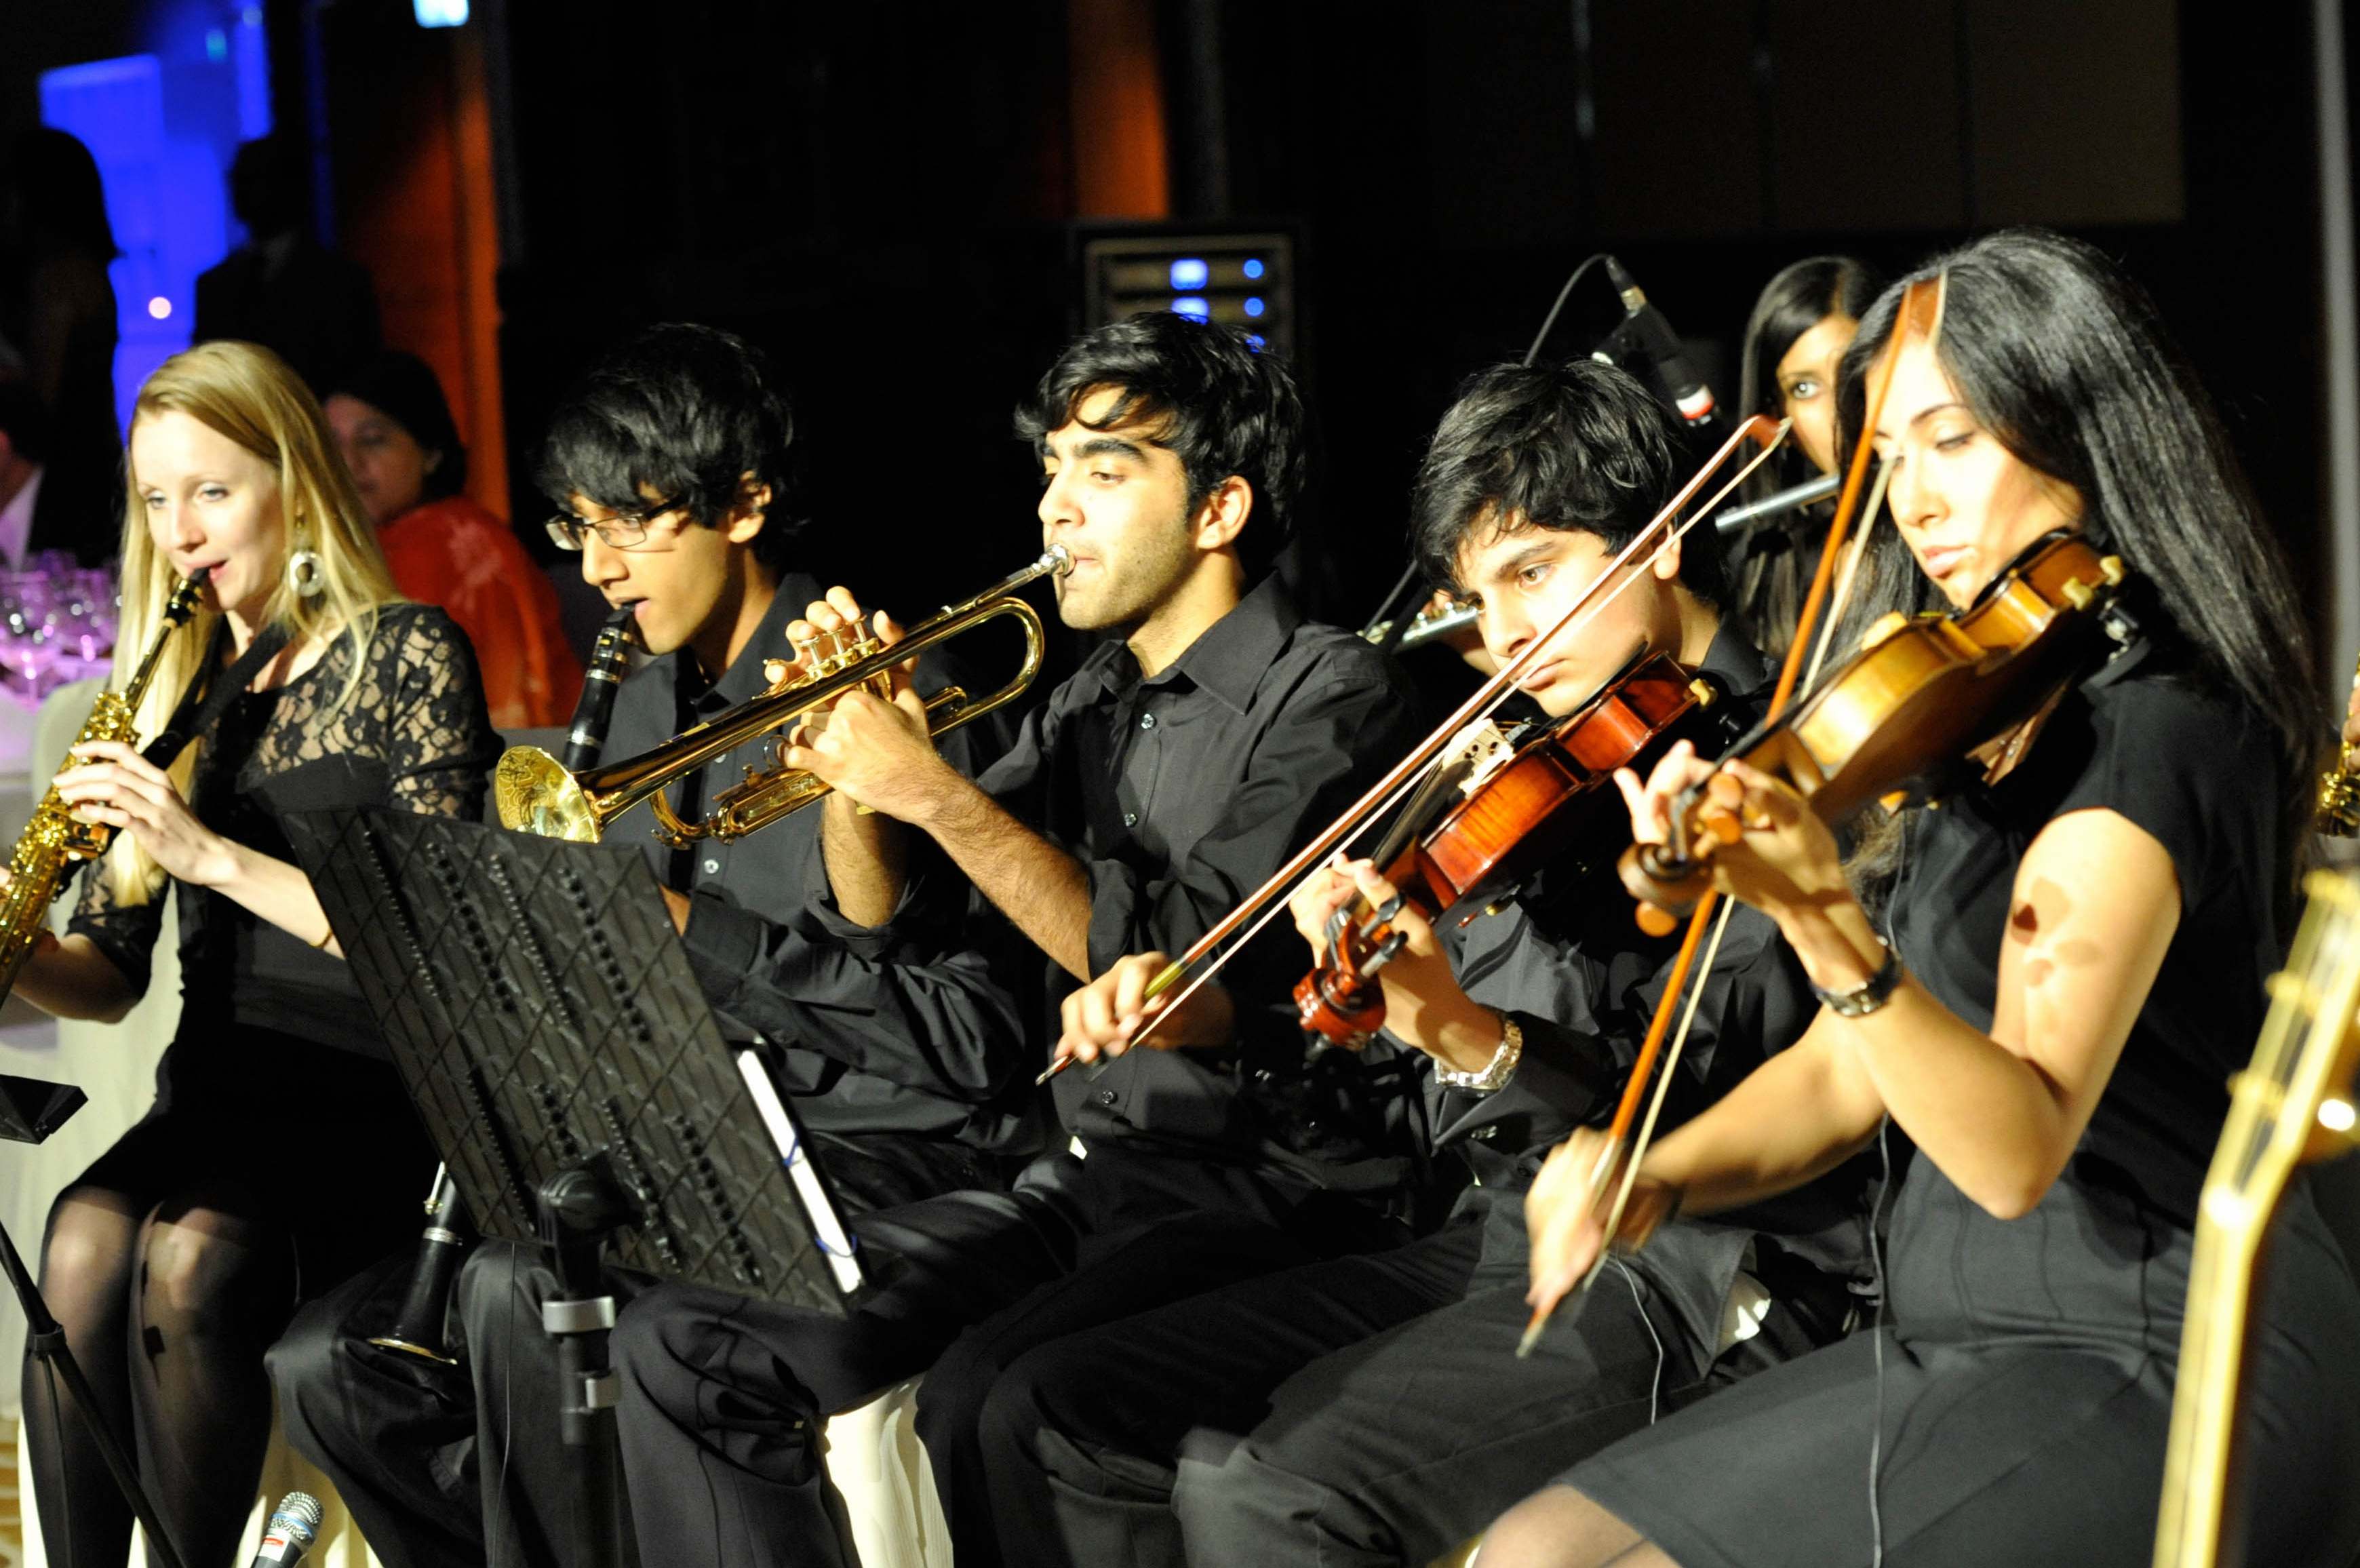 ICE at the Dubai FOCUS gala dinner performance on Sunday, 26 September 2010. Photo: Naveed Osman